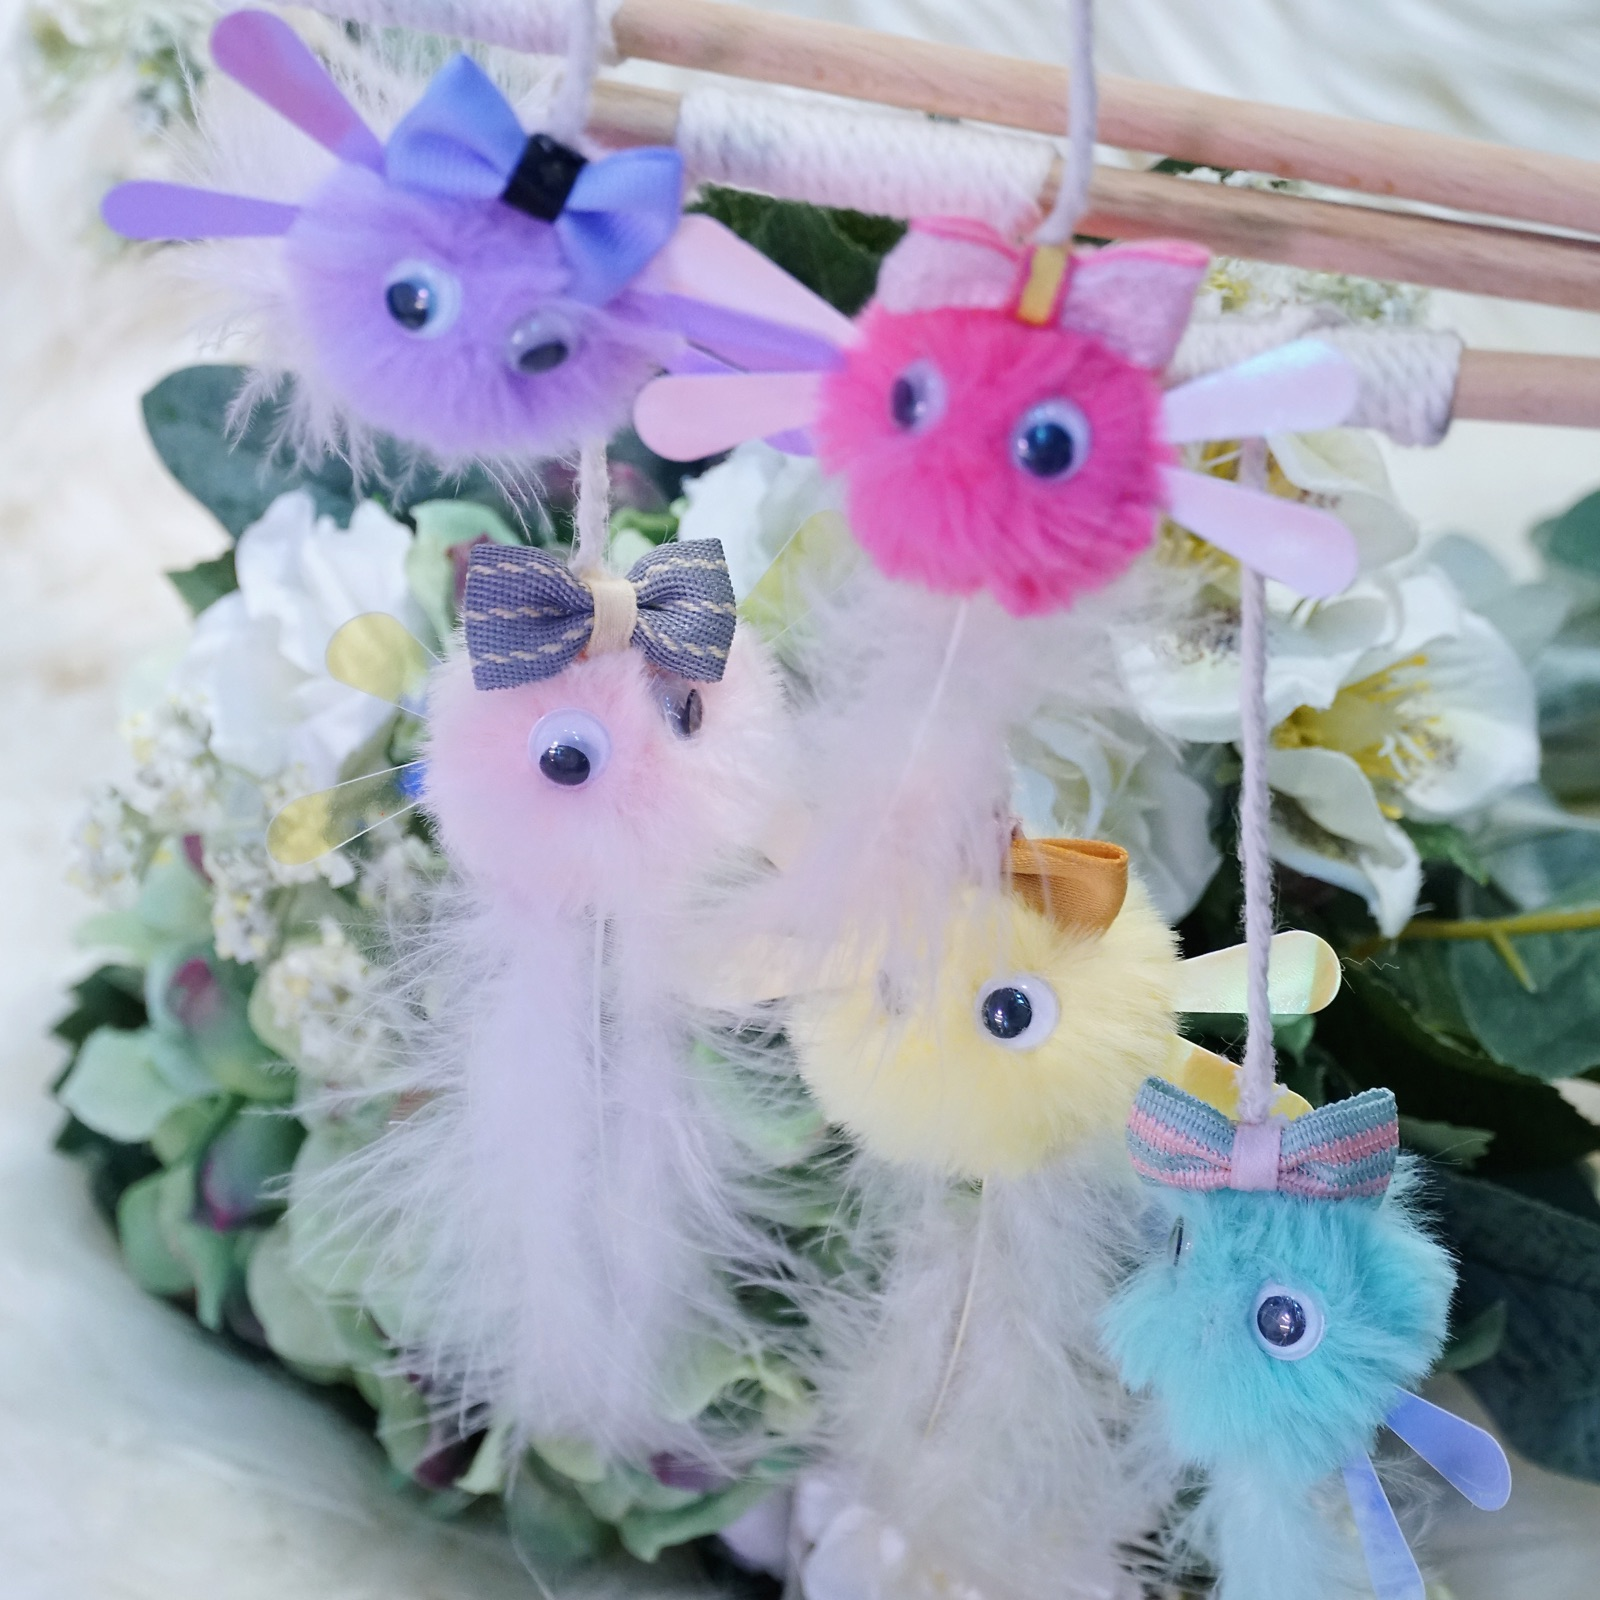 Meow baby cats side handcraft shop hair ball fairy tease cat stick to stimulate cats hunting nature